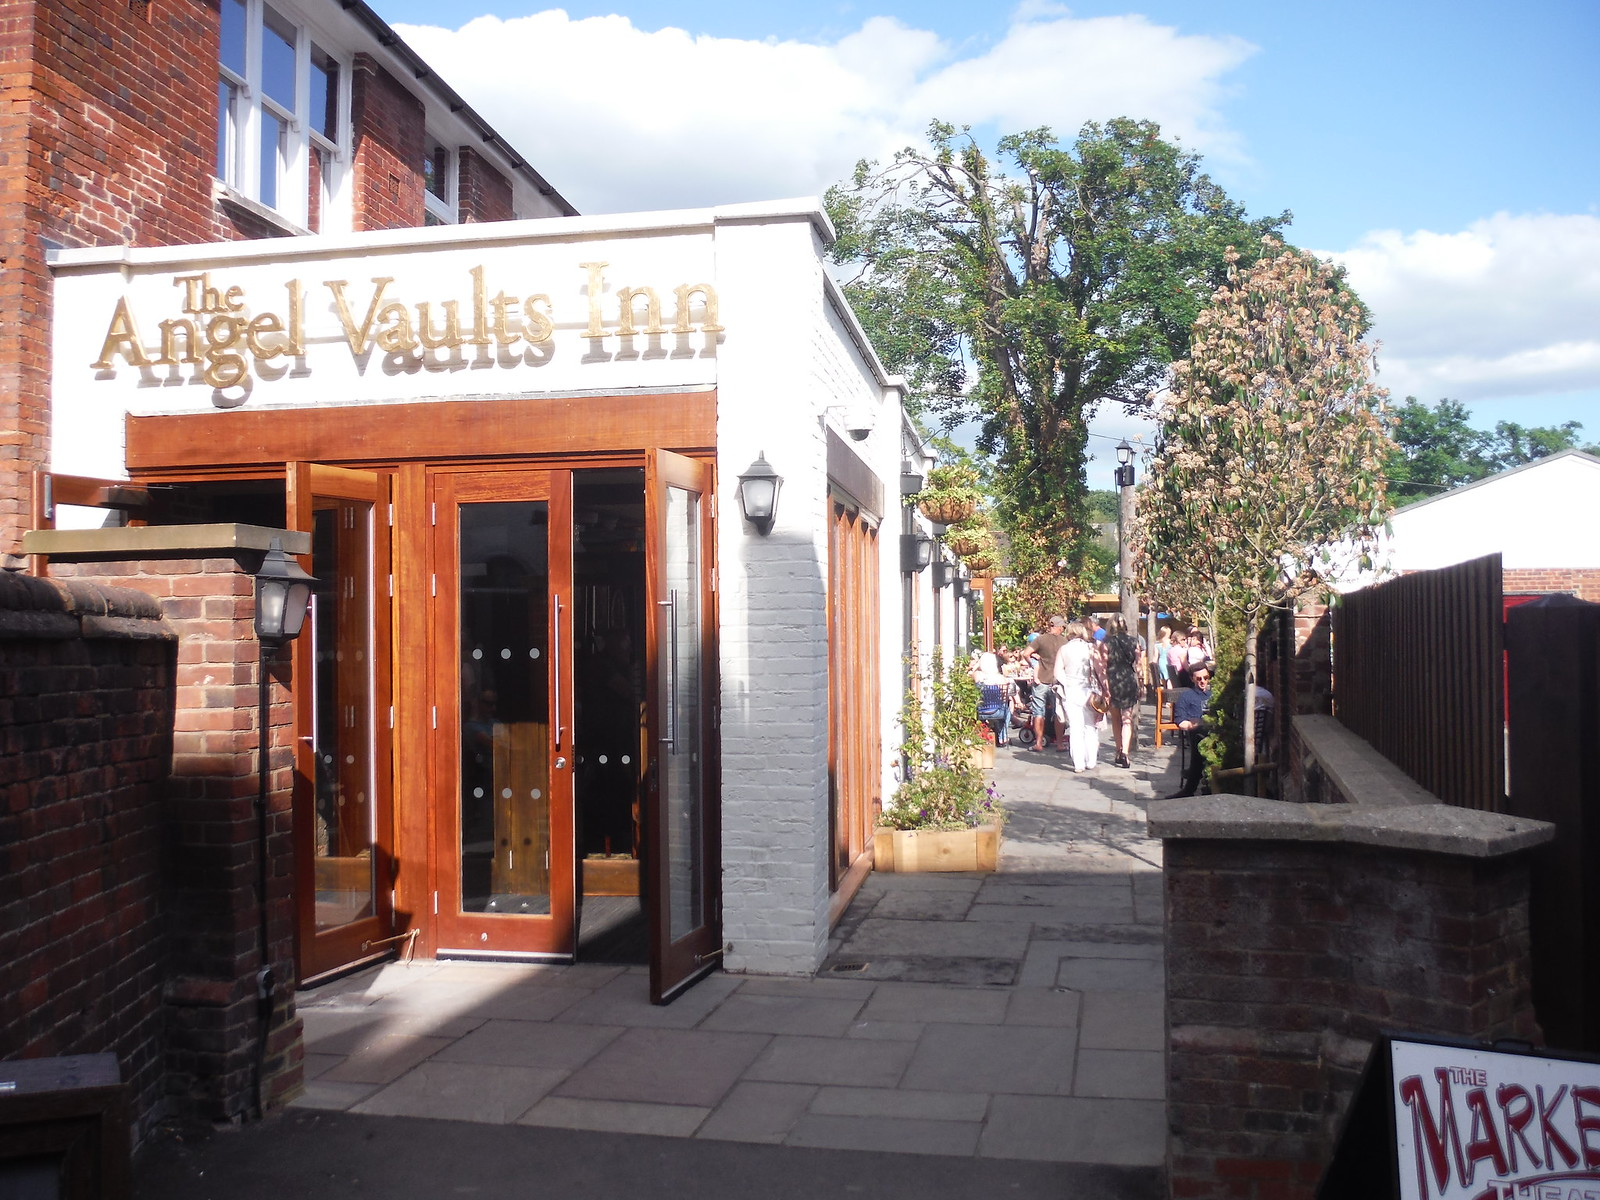 Angel Vault Inn in Sun Street SWC Walk 234 Hitchin Circular